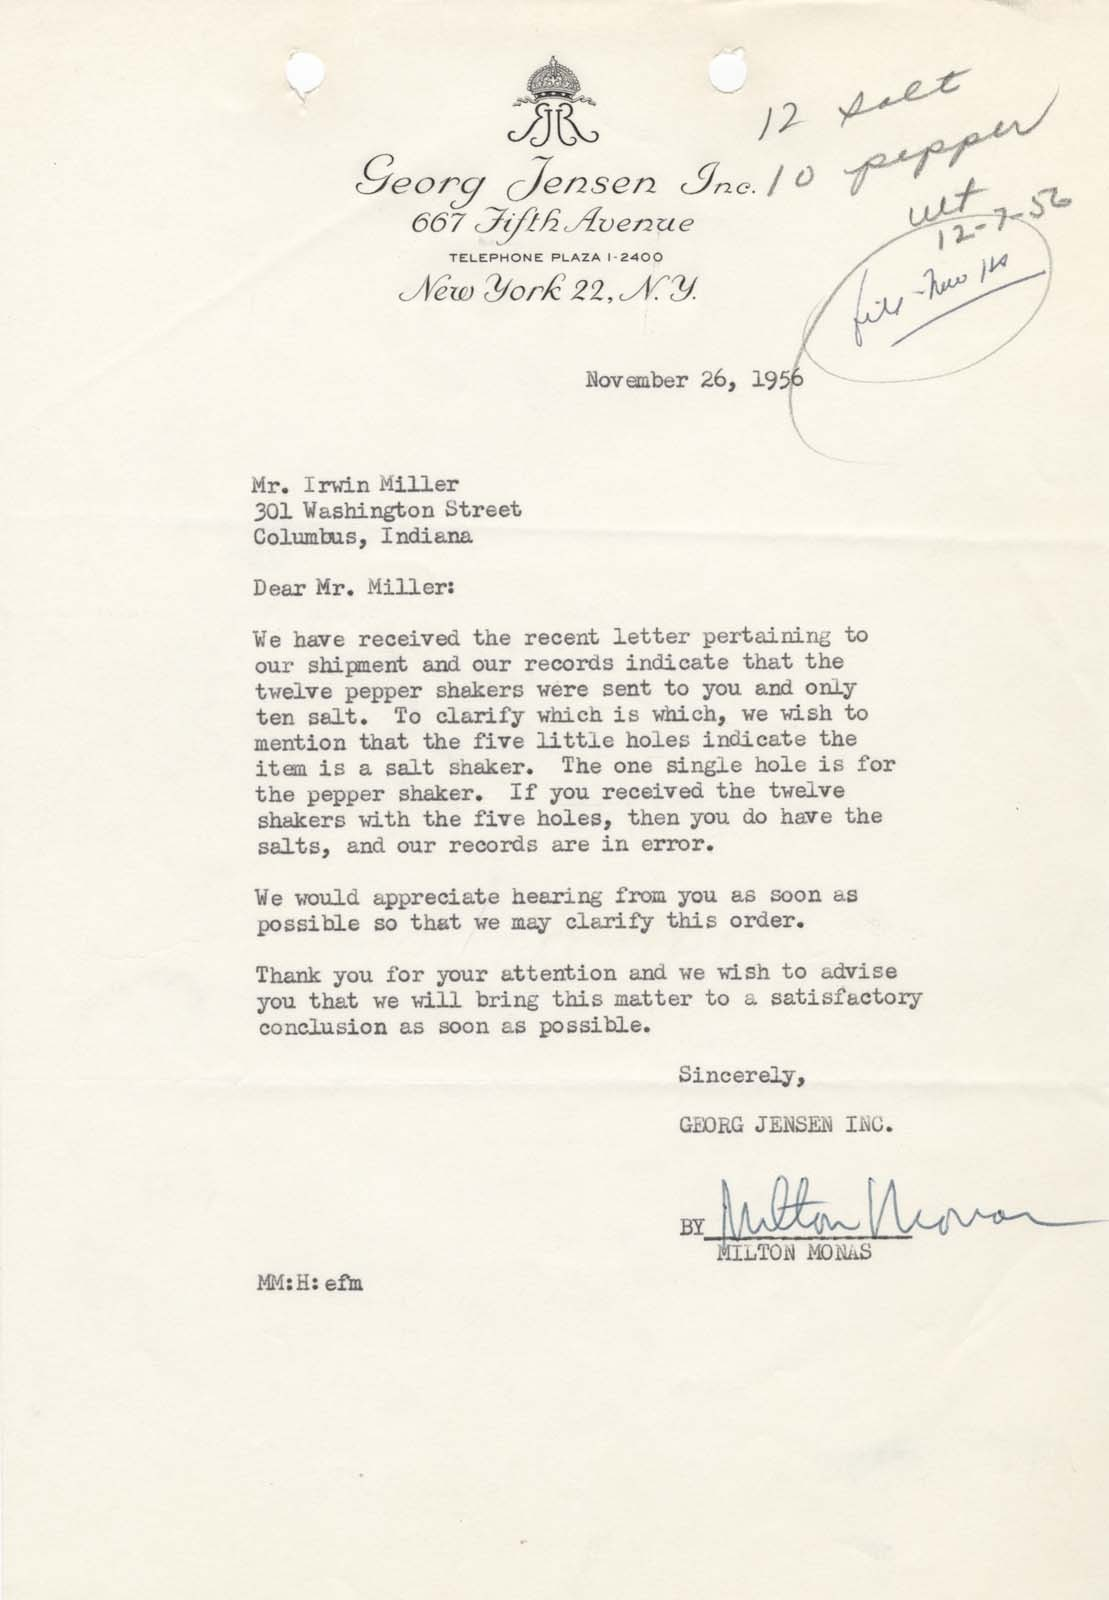 Georg Jensen's Milton Monas wrote to Mr. Miller about the missing salt shakers from a shipment of what was supposed to be 24 salt and pepper shakers.  Milton Monas to J. Irwin Miller, 26 November 1956, 1/4, Miller House and Garden Collection, IMA Archives, Indianapolis Museum of Art, Indianapolis, Indiana. (MHG_Ia_B001_f004_018)